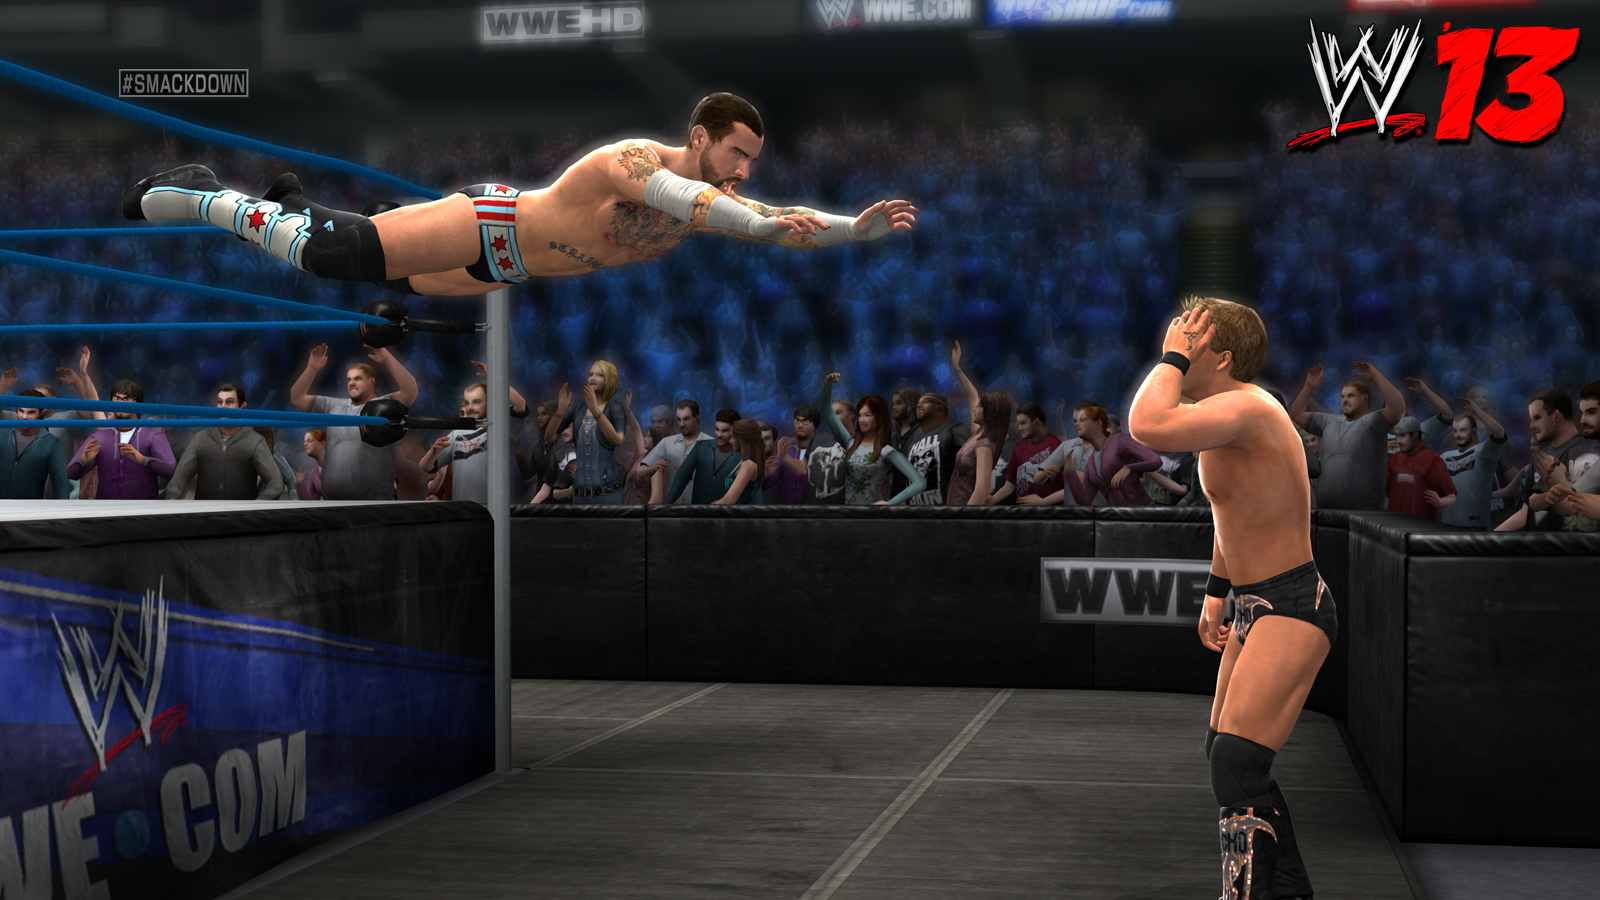 It's About to Get Real in WWE '13 - WWE Live and Predator Technology 2 0